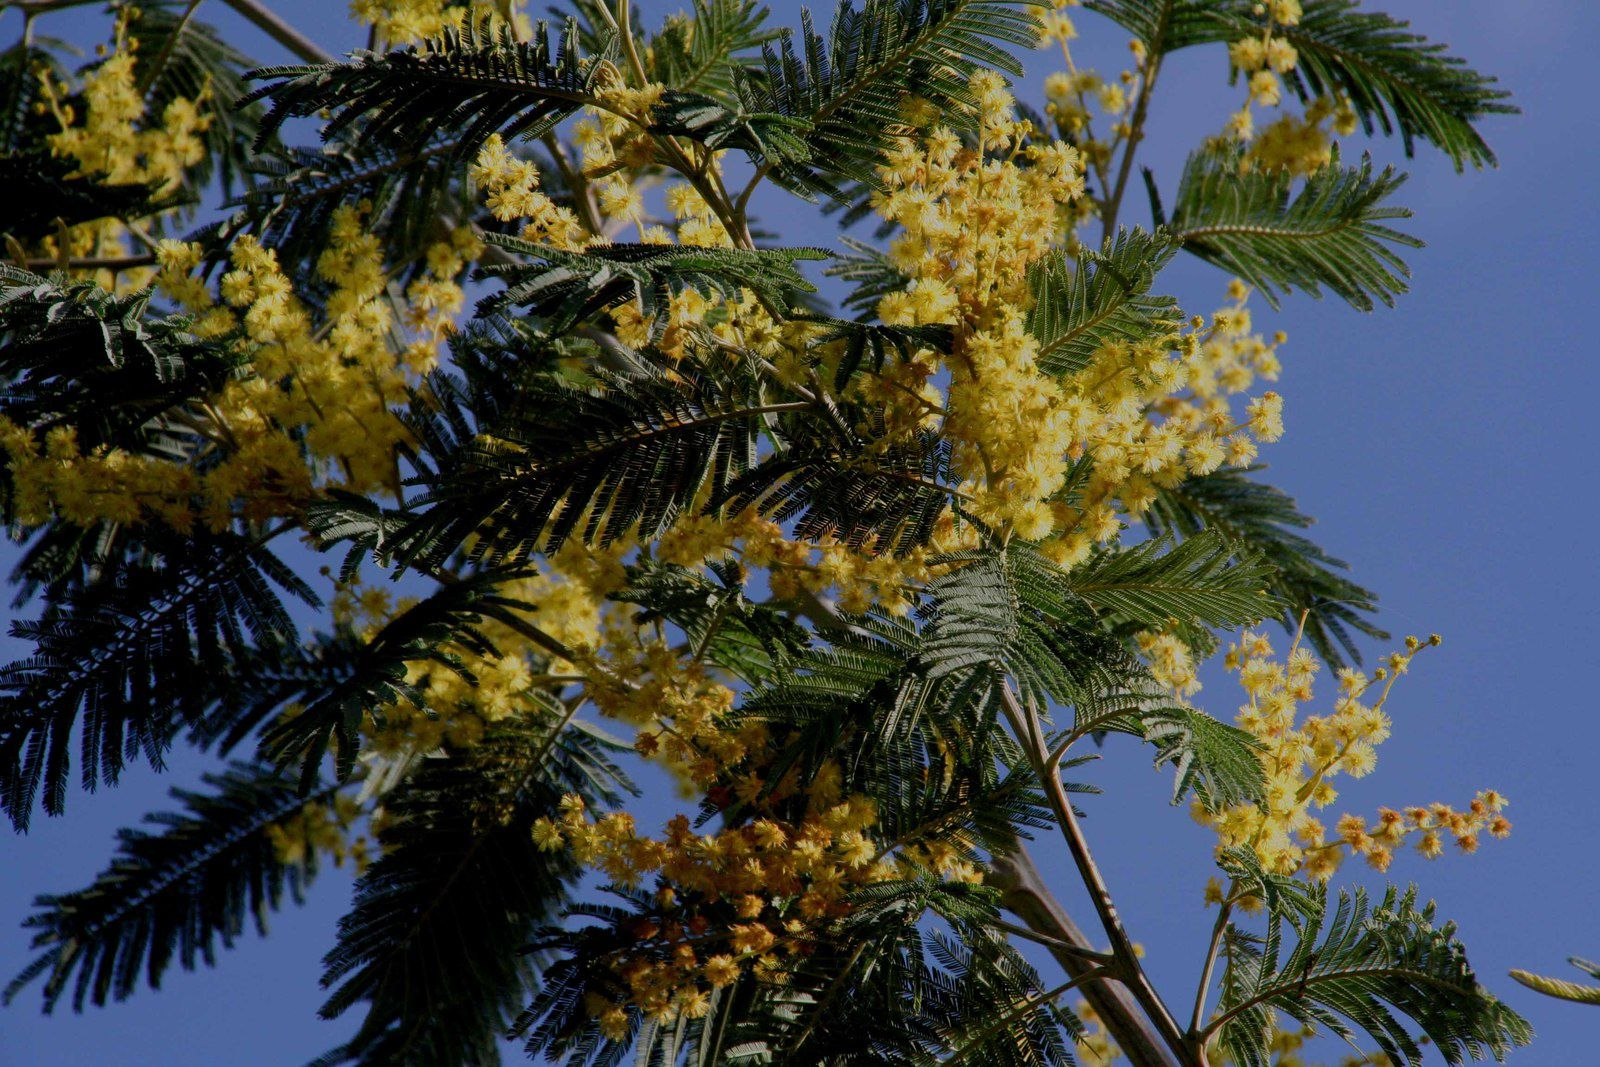 L'or du mimosa